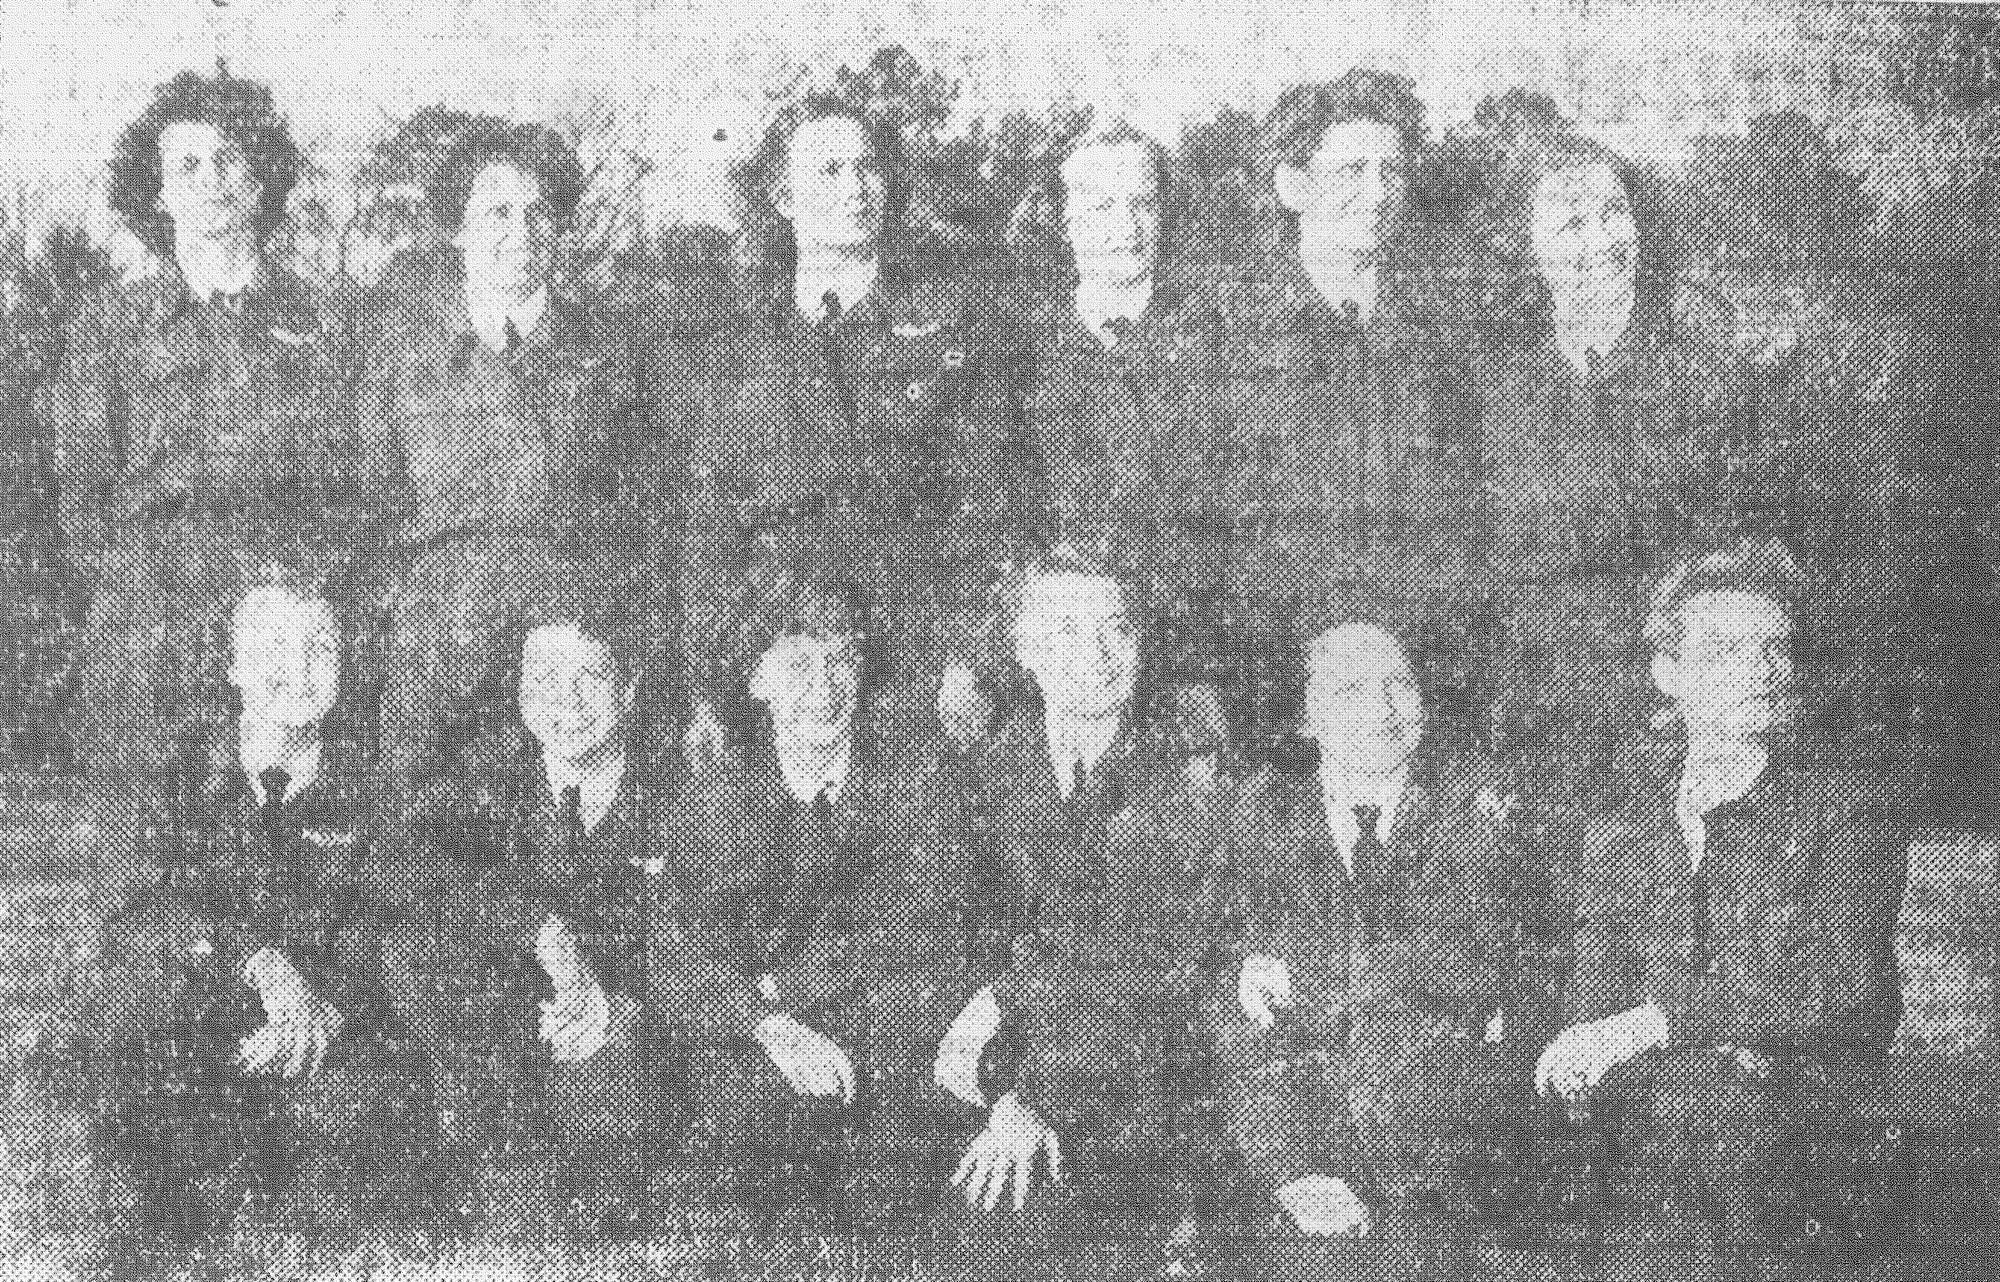 Twelve out of 13 of Shaw's WASPs are pictured here in 1944, the 12 members who wanted to obtain flying jobs when the WASP disbanded. Betty LeFevre was ill when the photo was taken, and she was the member who was going to look for a ground job. Bottom row from left: Beverly Dietrich, Marybelle Lyall, Marjorie Poppell, Ethel Meyer, Irene McConihay and Retha Minter. Top row from left: Kathleen Dooley, Marjorie Wakeham, Mary Showers, Mary Rance, Yvonne Pateman and Eleanor Feeley.